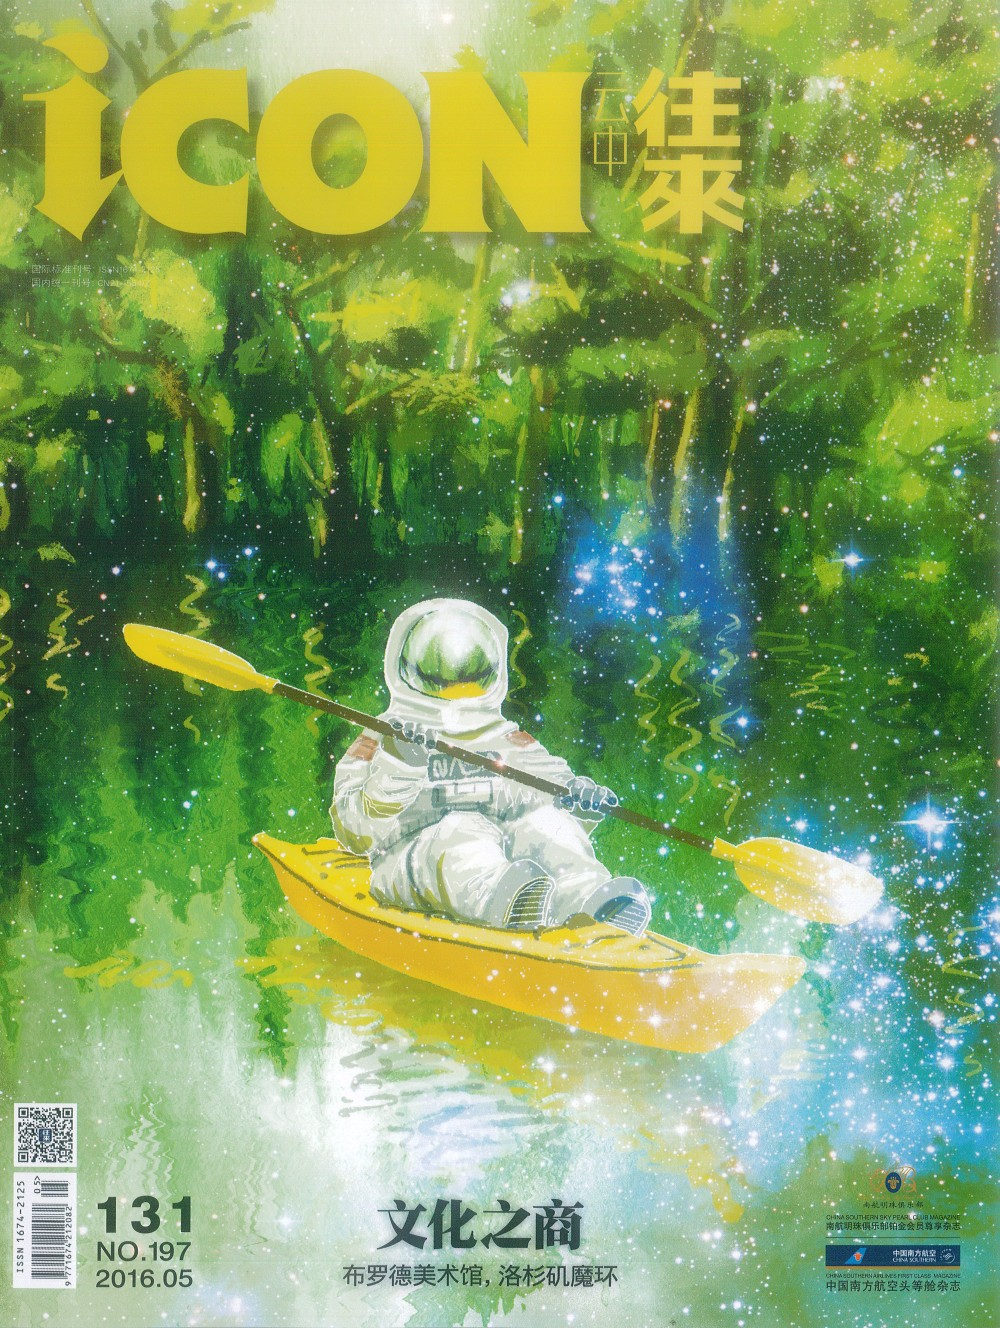 ICON 云中往来 Cover V2